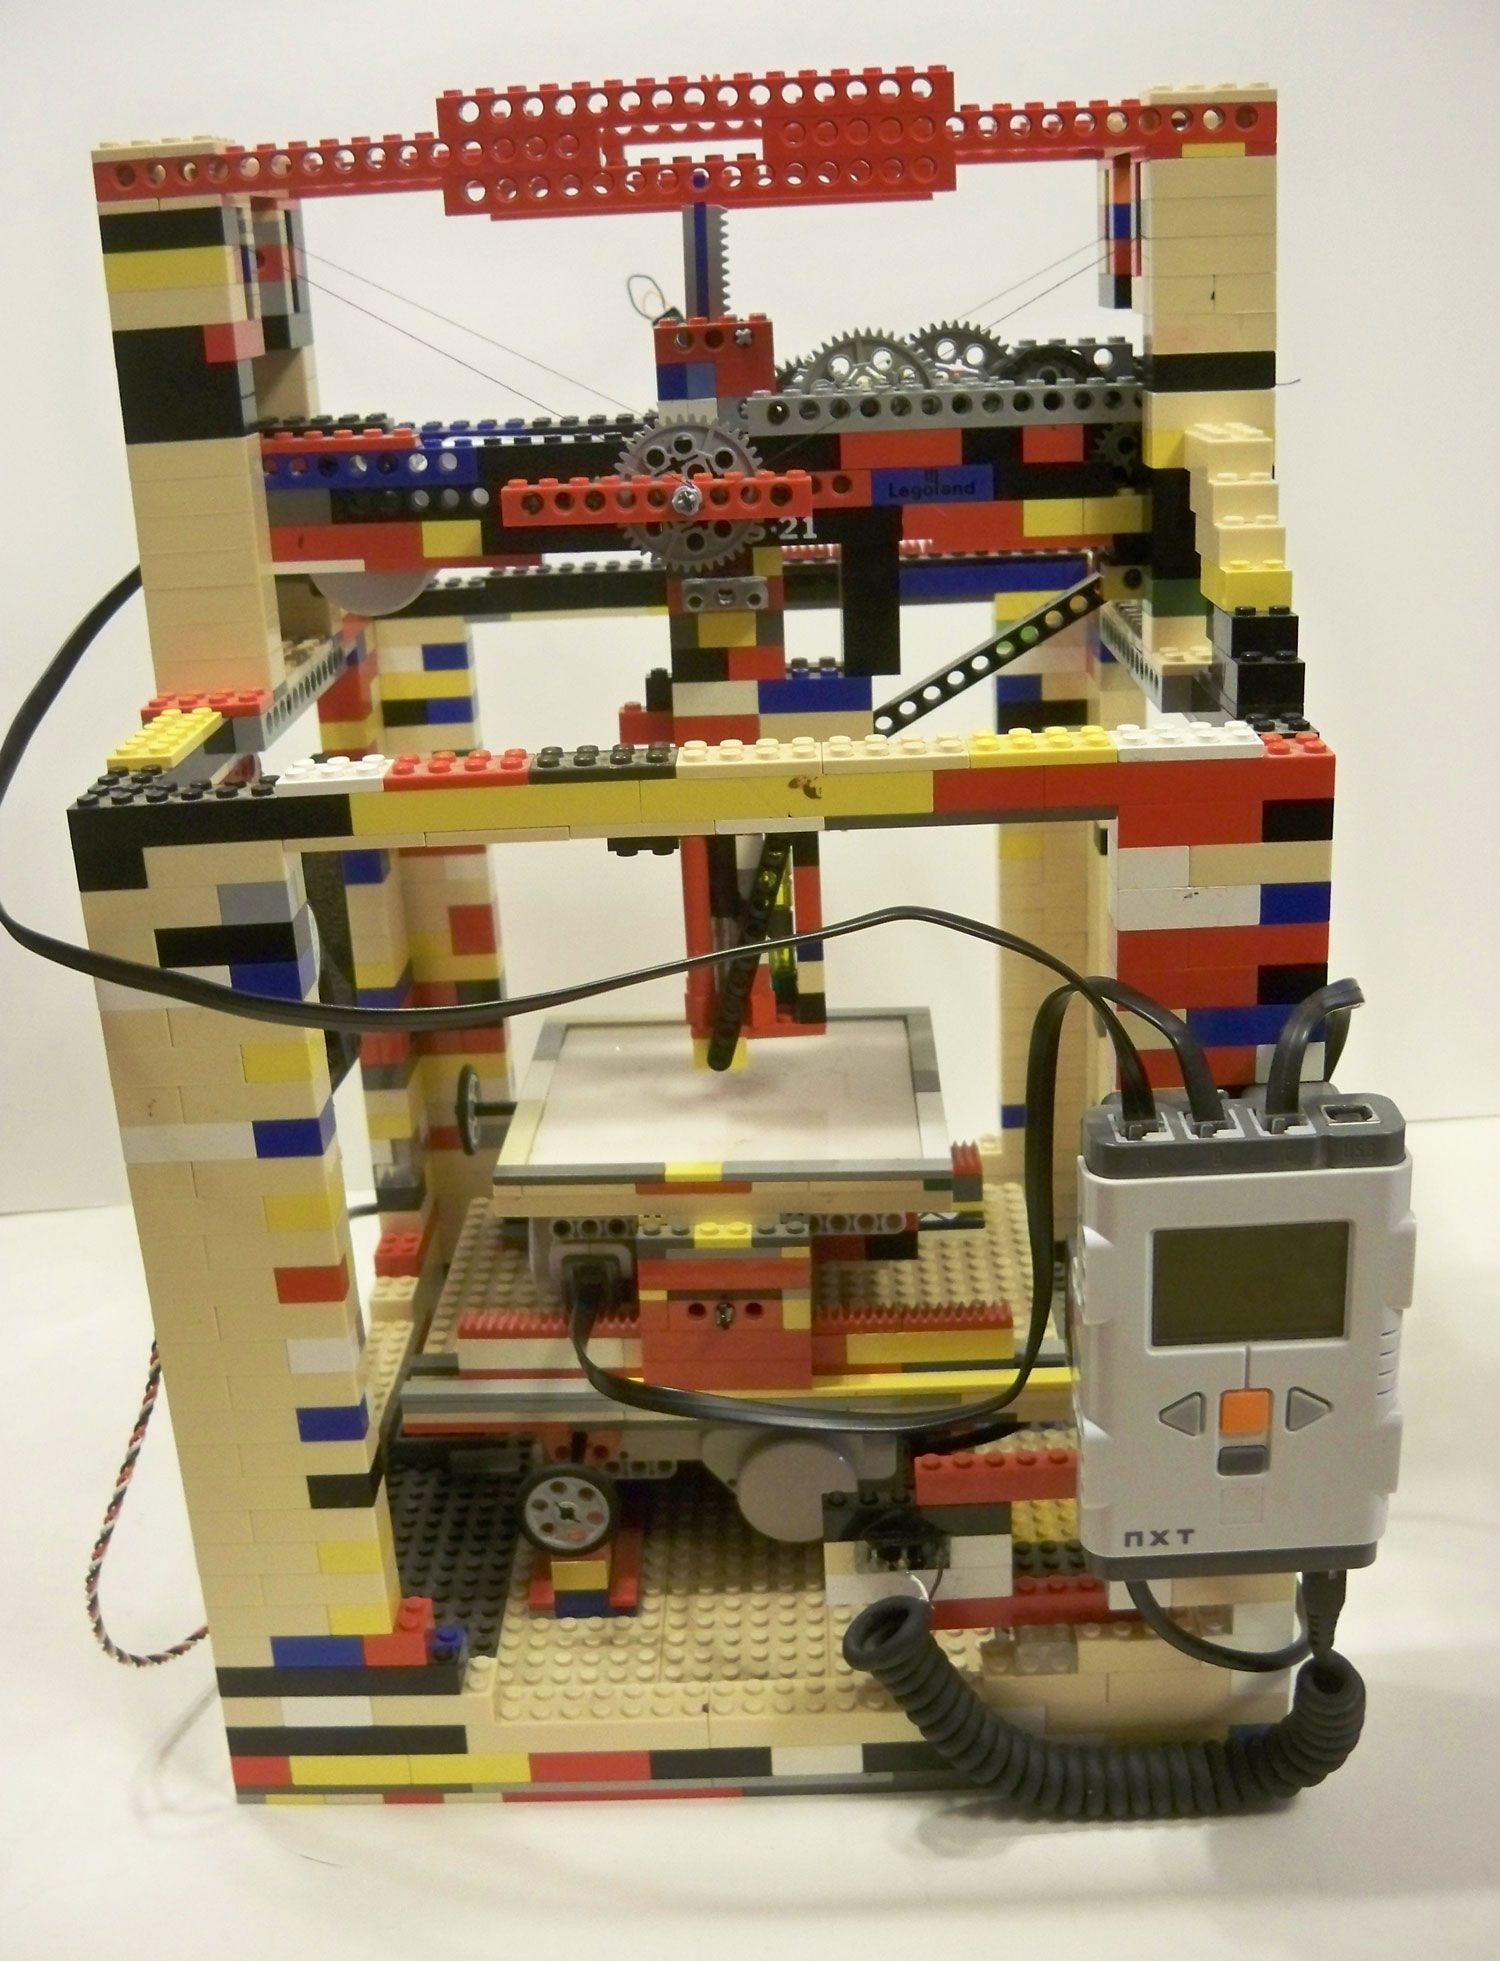 DIY Functional LEGO 3D Printer Build Which Is Super Cheap